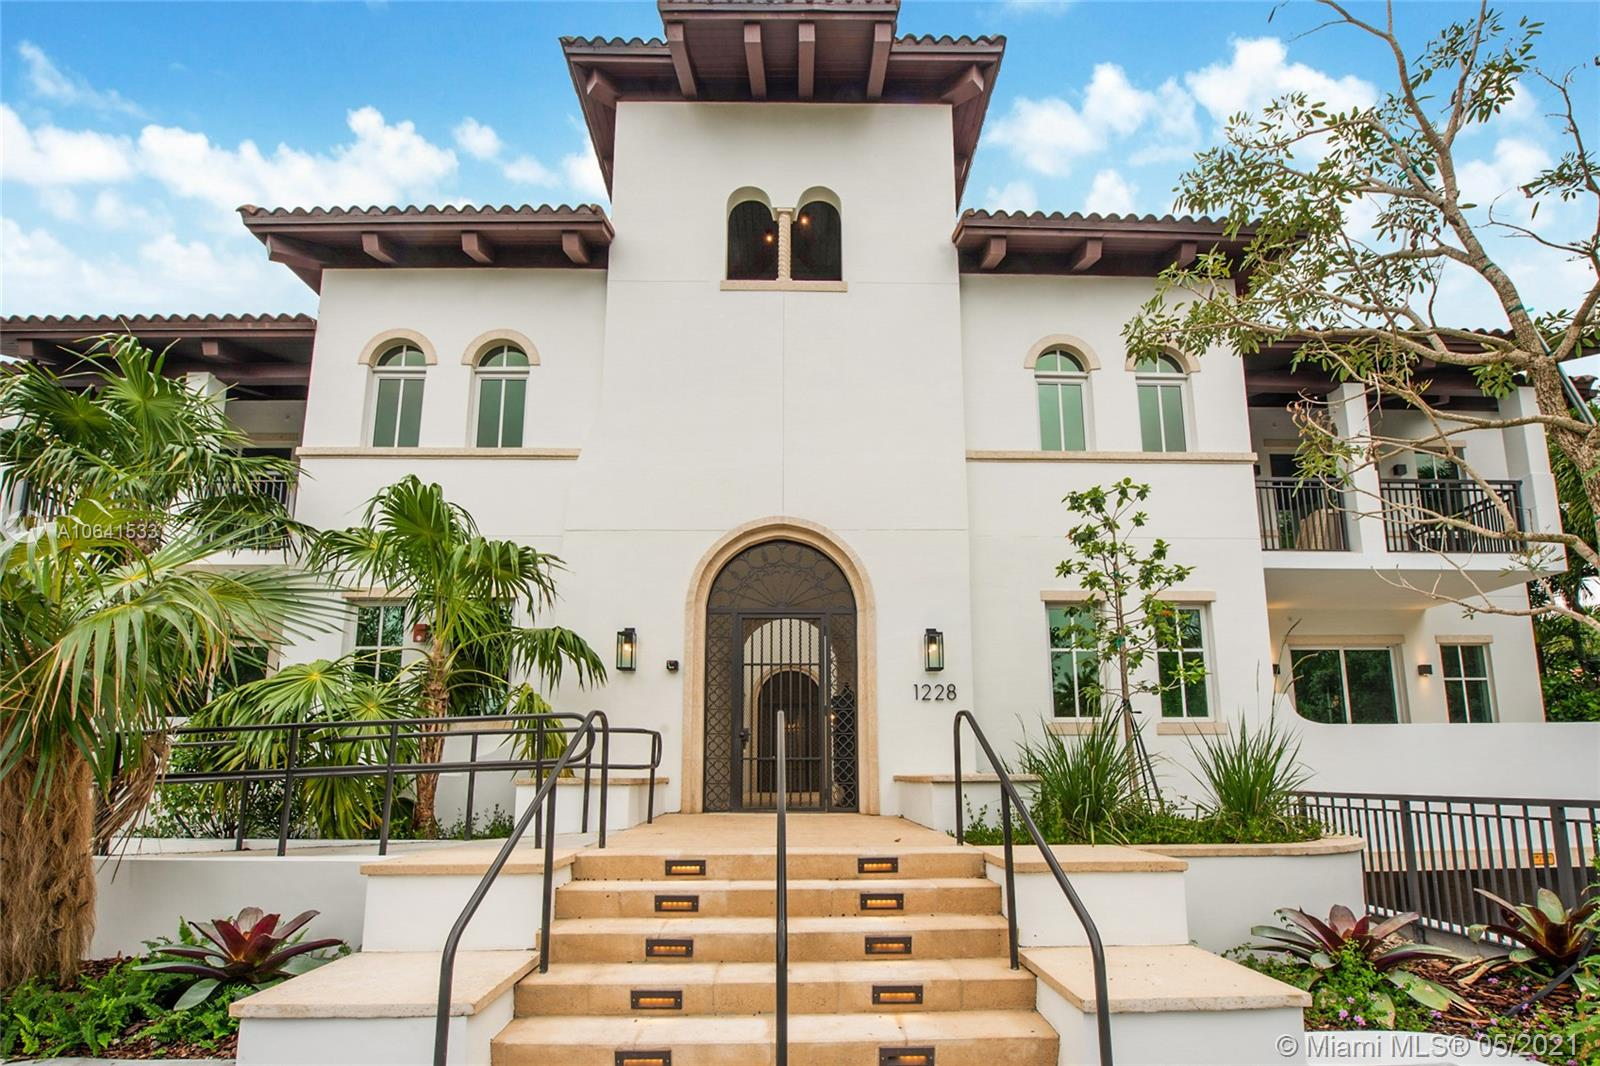 Be One Of The Fortunate Few To Live Next To The Iconic Biltmore Hotel, And Enjoy Landmark-Resort Living In This Boutique Condo Of 11 Units On The Golf Course, The Only Condo Of Its Kind In An Established Single-Family Neighborhood. This Ph Villa Offers Private Elevator With Direct Golf Course View, 3 Balconies, And Large Covered Terrace With Summer Kitchen. A Place Of Timeless Beauty; The Classic Architecture, In Keeping With Merrick+Ógé¼Gäós Vision, Is Complemented By Contemporary Interiors, Italian Veneta Cucina Kitchens, Wolf/Sub Zero Appliances, Sleek European Doors, And Spa Master Bath. For A Quick Cool Down, Enjoy The Residents+Ógé¼Gäó Dipping Pool And Deck, Surrounded By Lush Landscaping And Tall Privacy Hedge. One-Year Free Membership To The Club At The Biltmore. Only A Few Units Left!